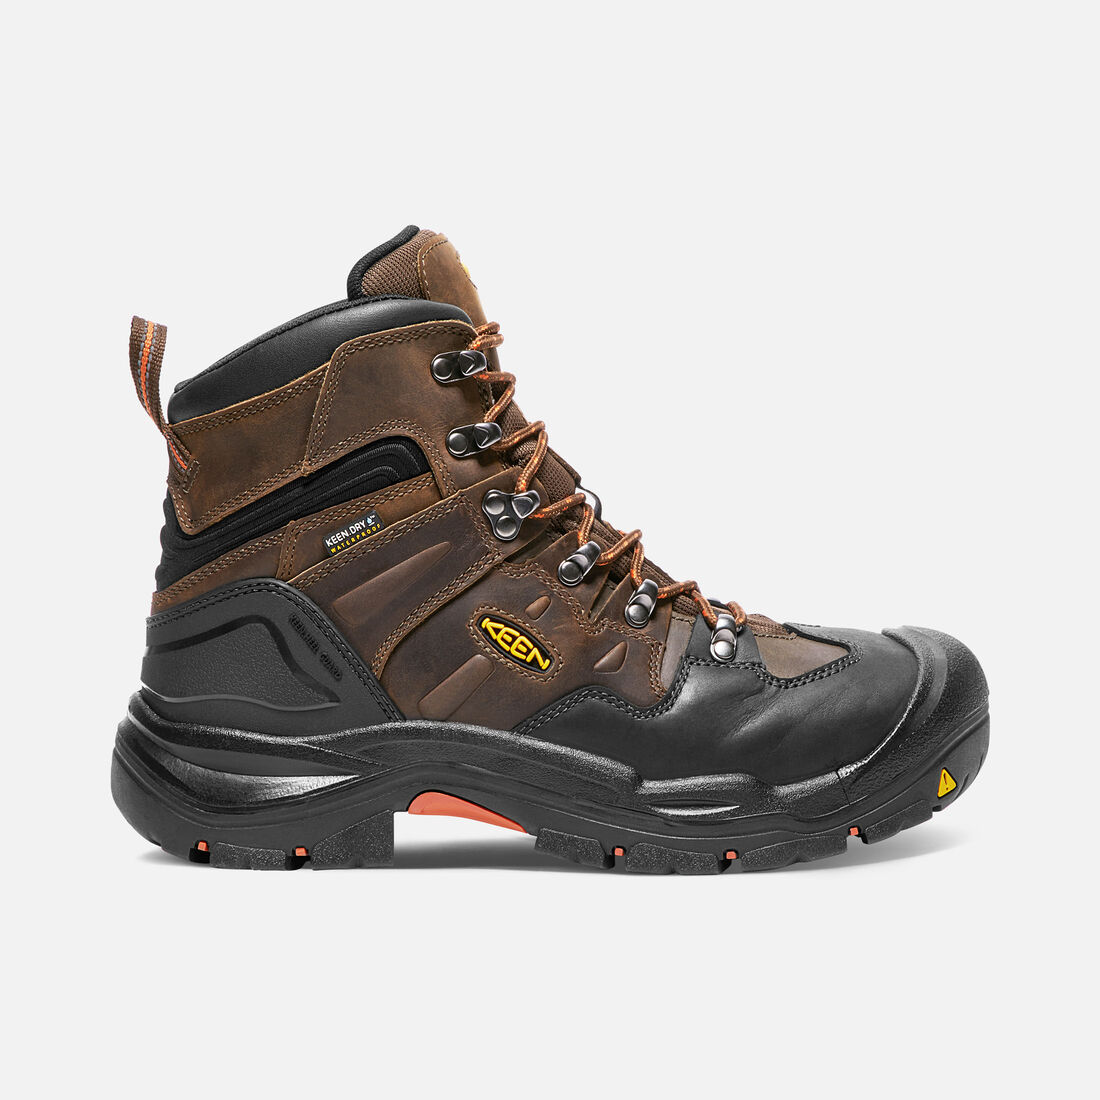 Men's COBURG 6' Waterproof (Steel Toe) in Cascade Brown/Brindle - large view.